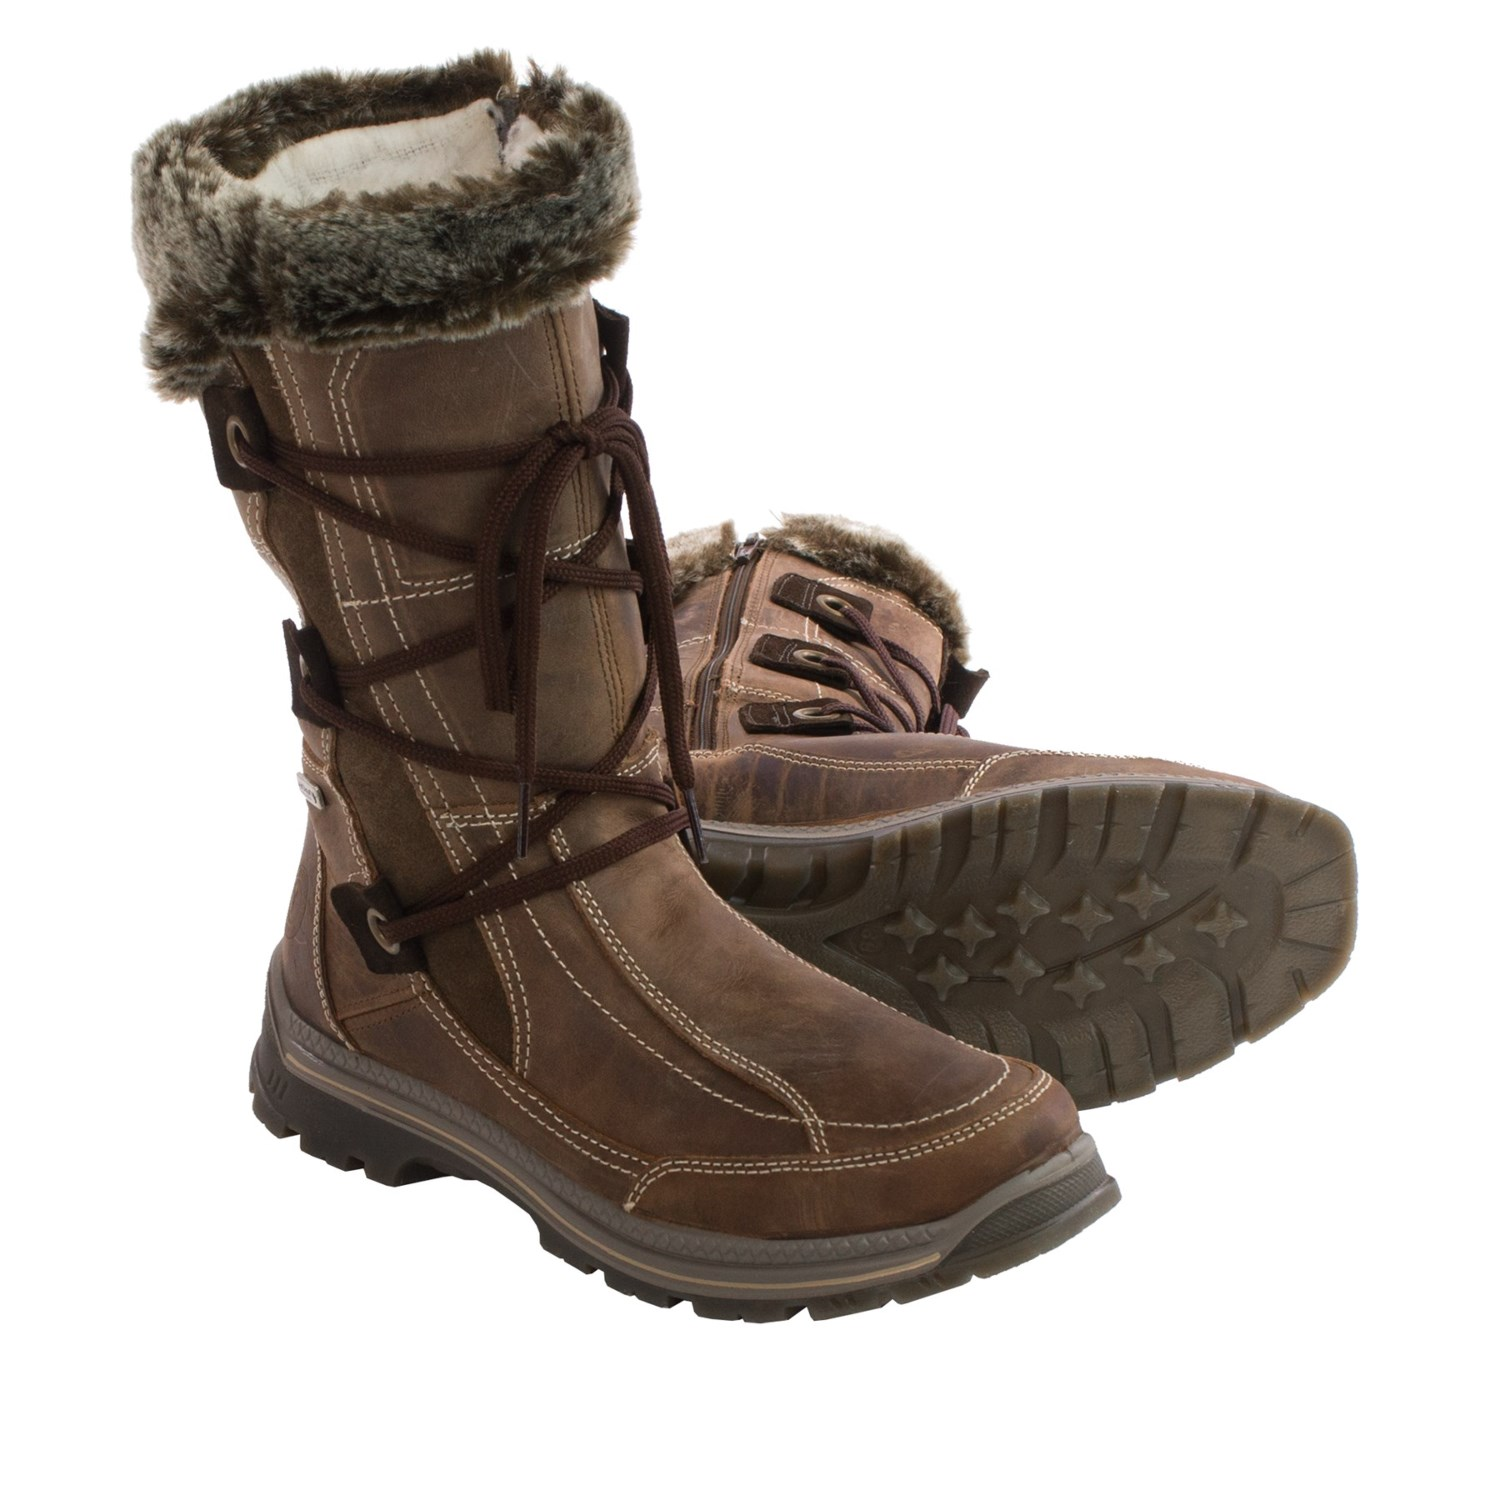 Womens Snow Boots Clearance Boot Yc